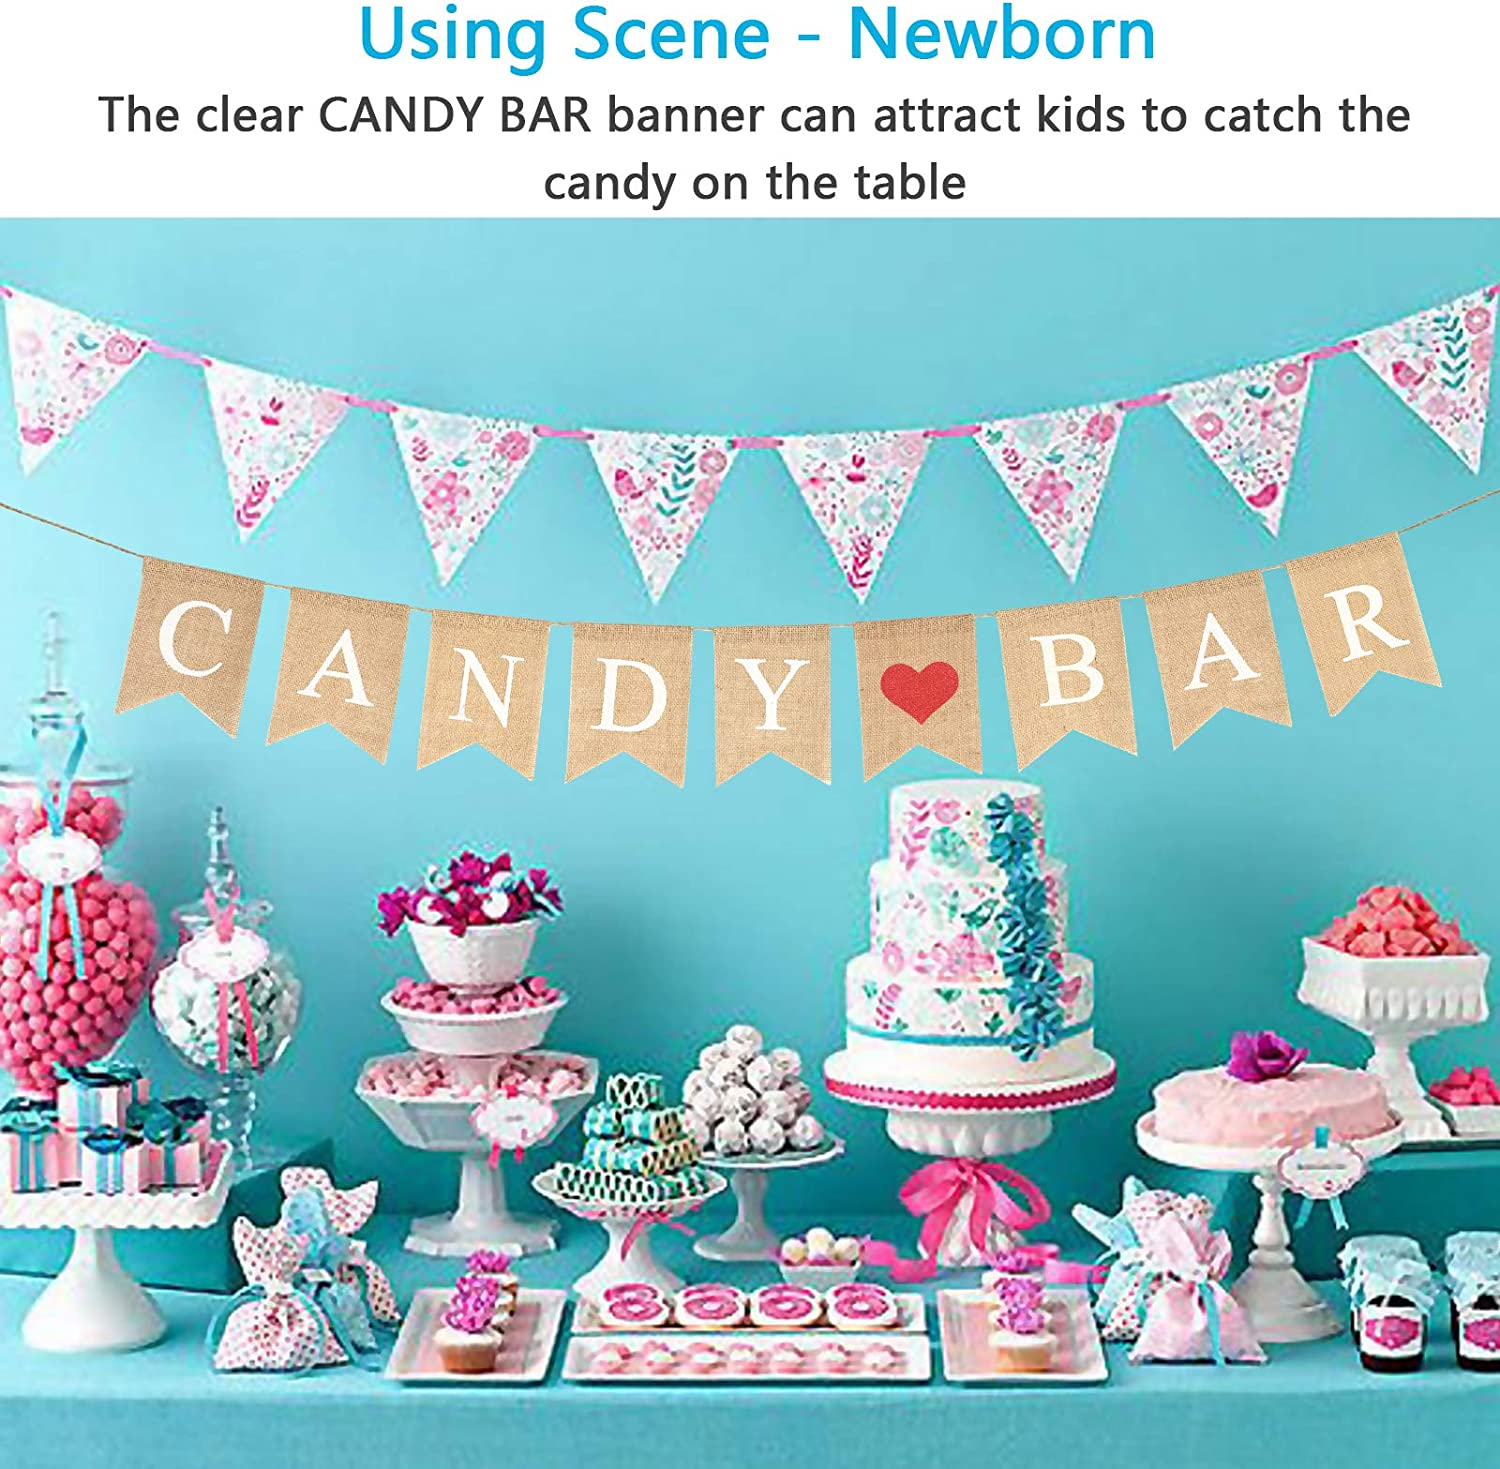 Cake Table Sweets Bunting Tea Party Candy Bar Sweet Dessert Bar Table Sign Baby Shower Birthday Party Decoration Wedding Decor